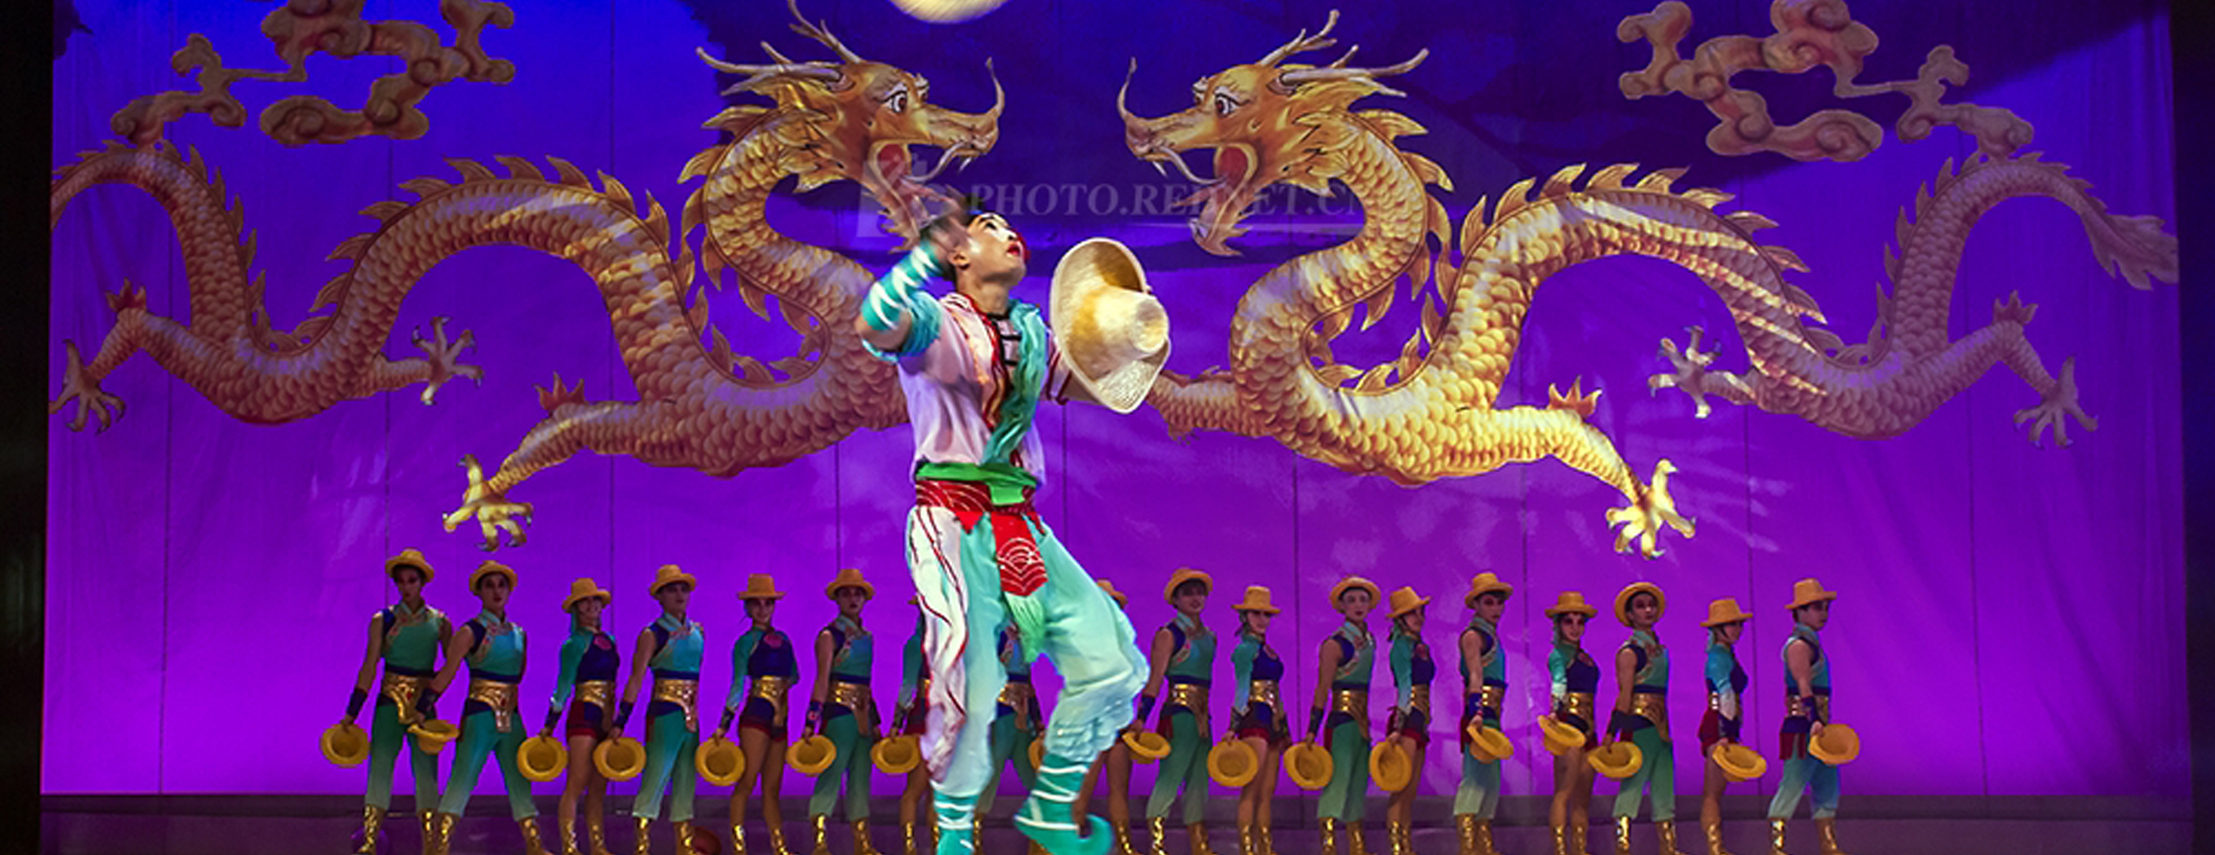 Shanghai Acrobats at Orlando's Dr. Phillips Center in December